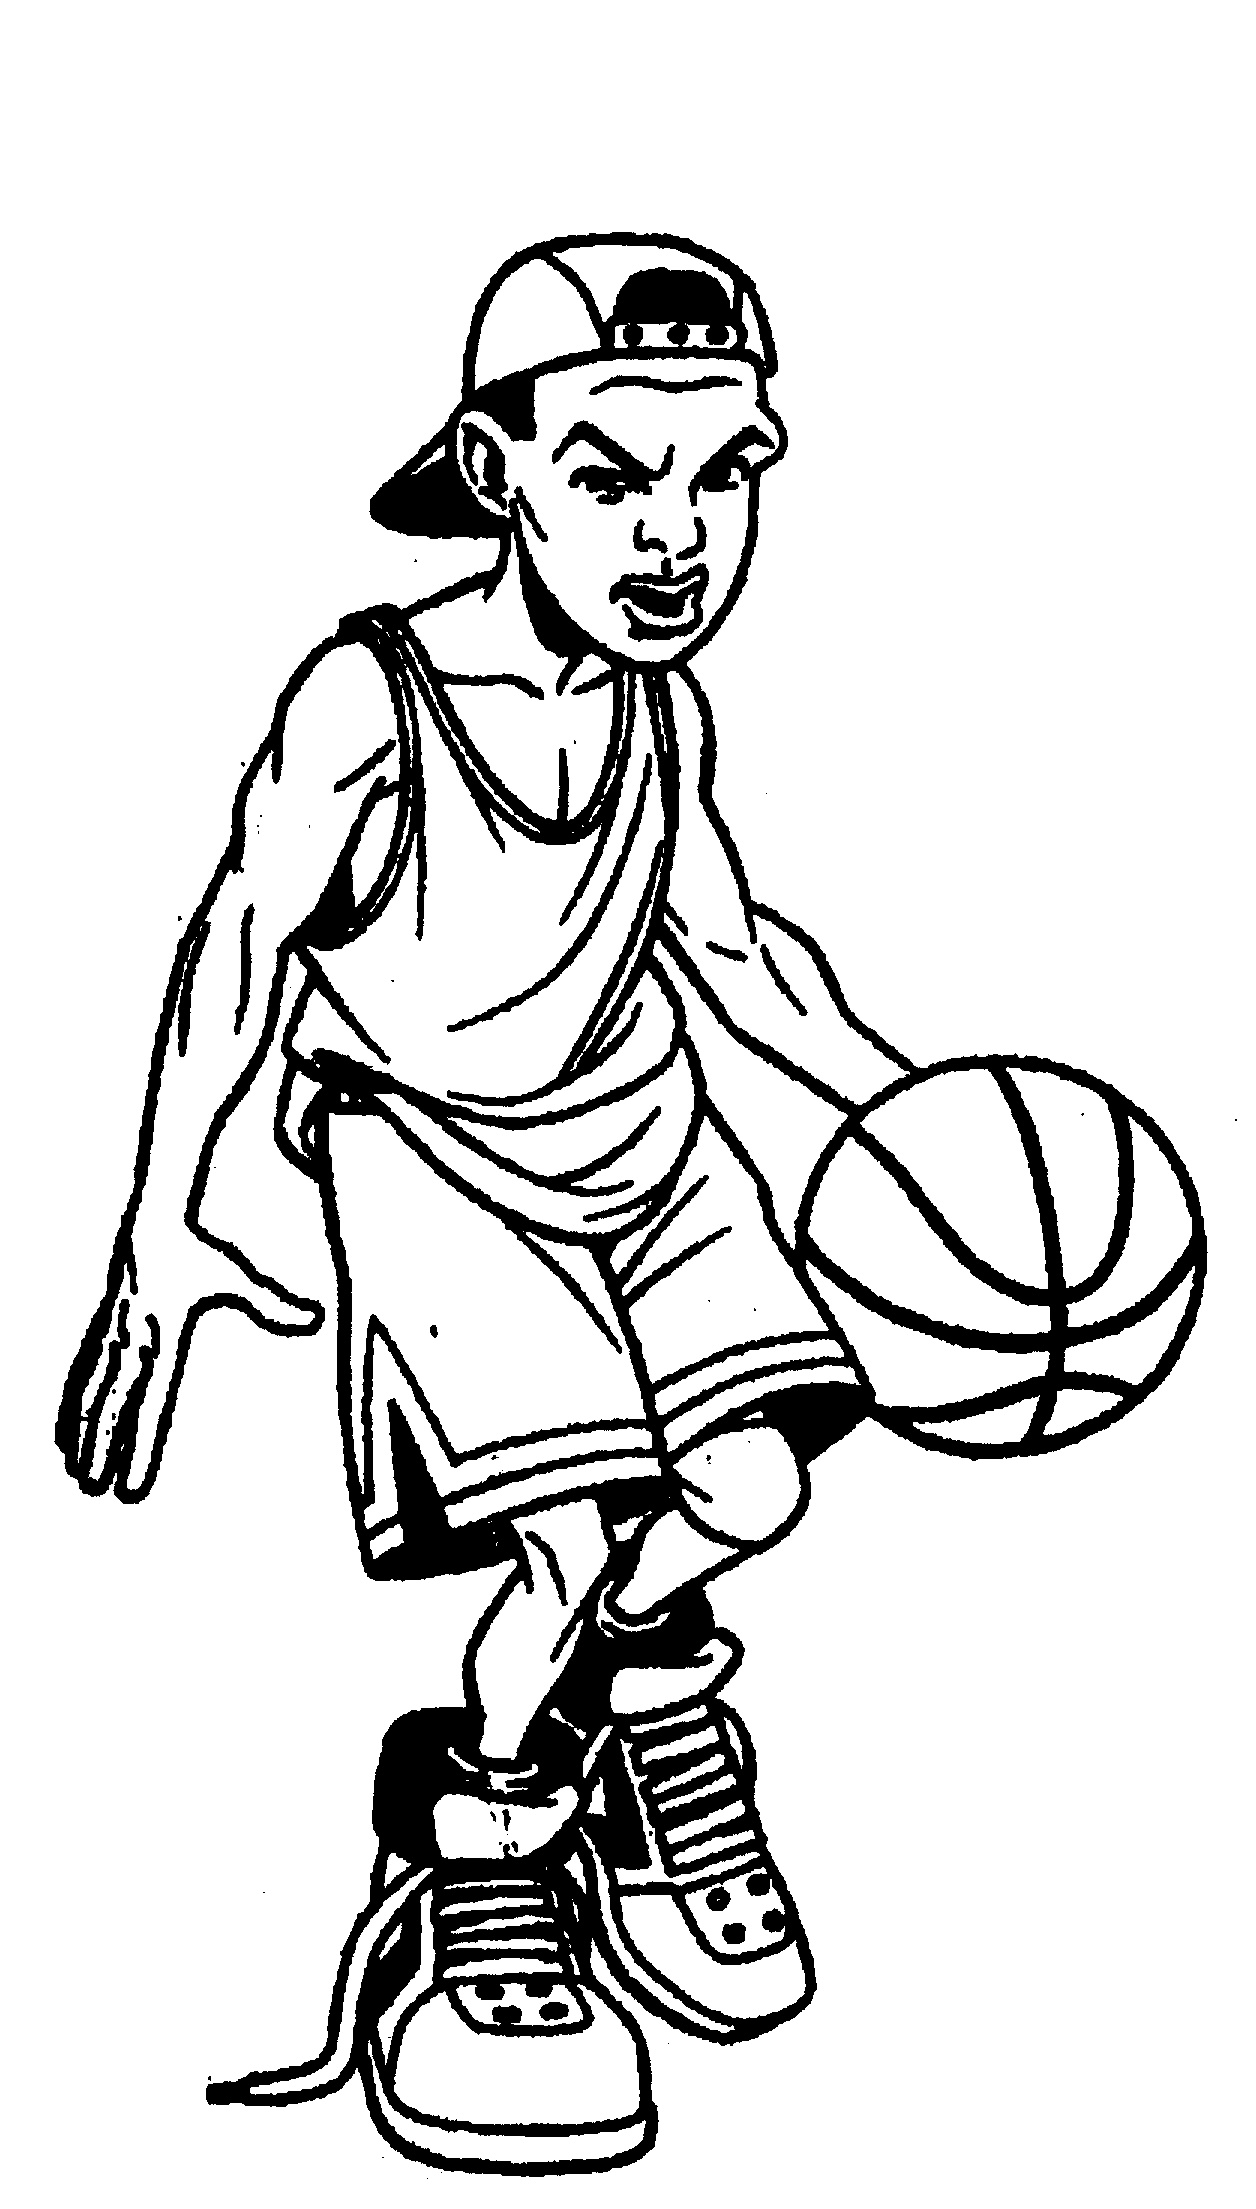 Images For Cool Basketball Logos To Draw